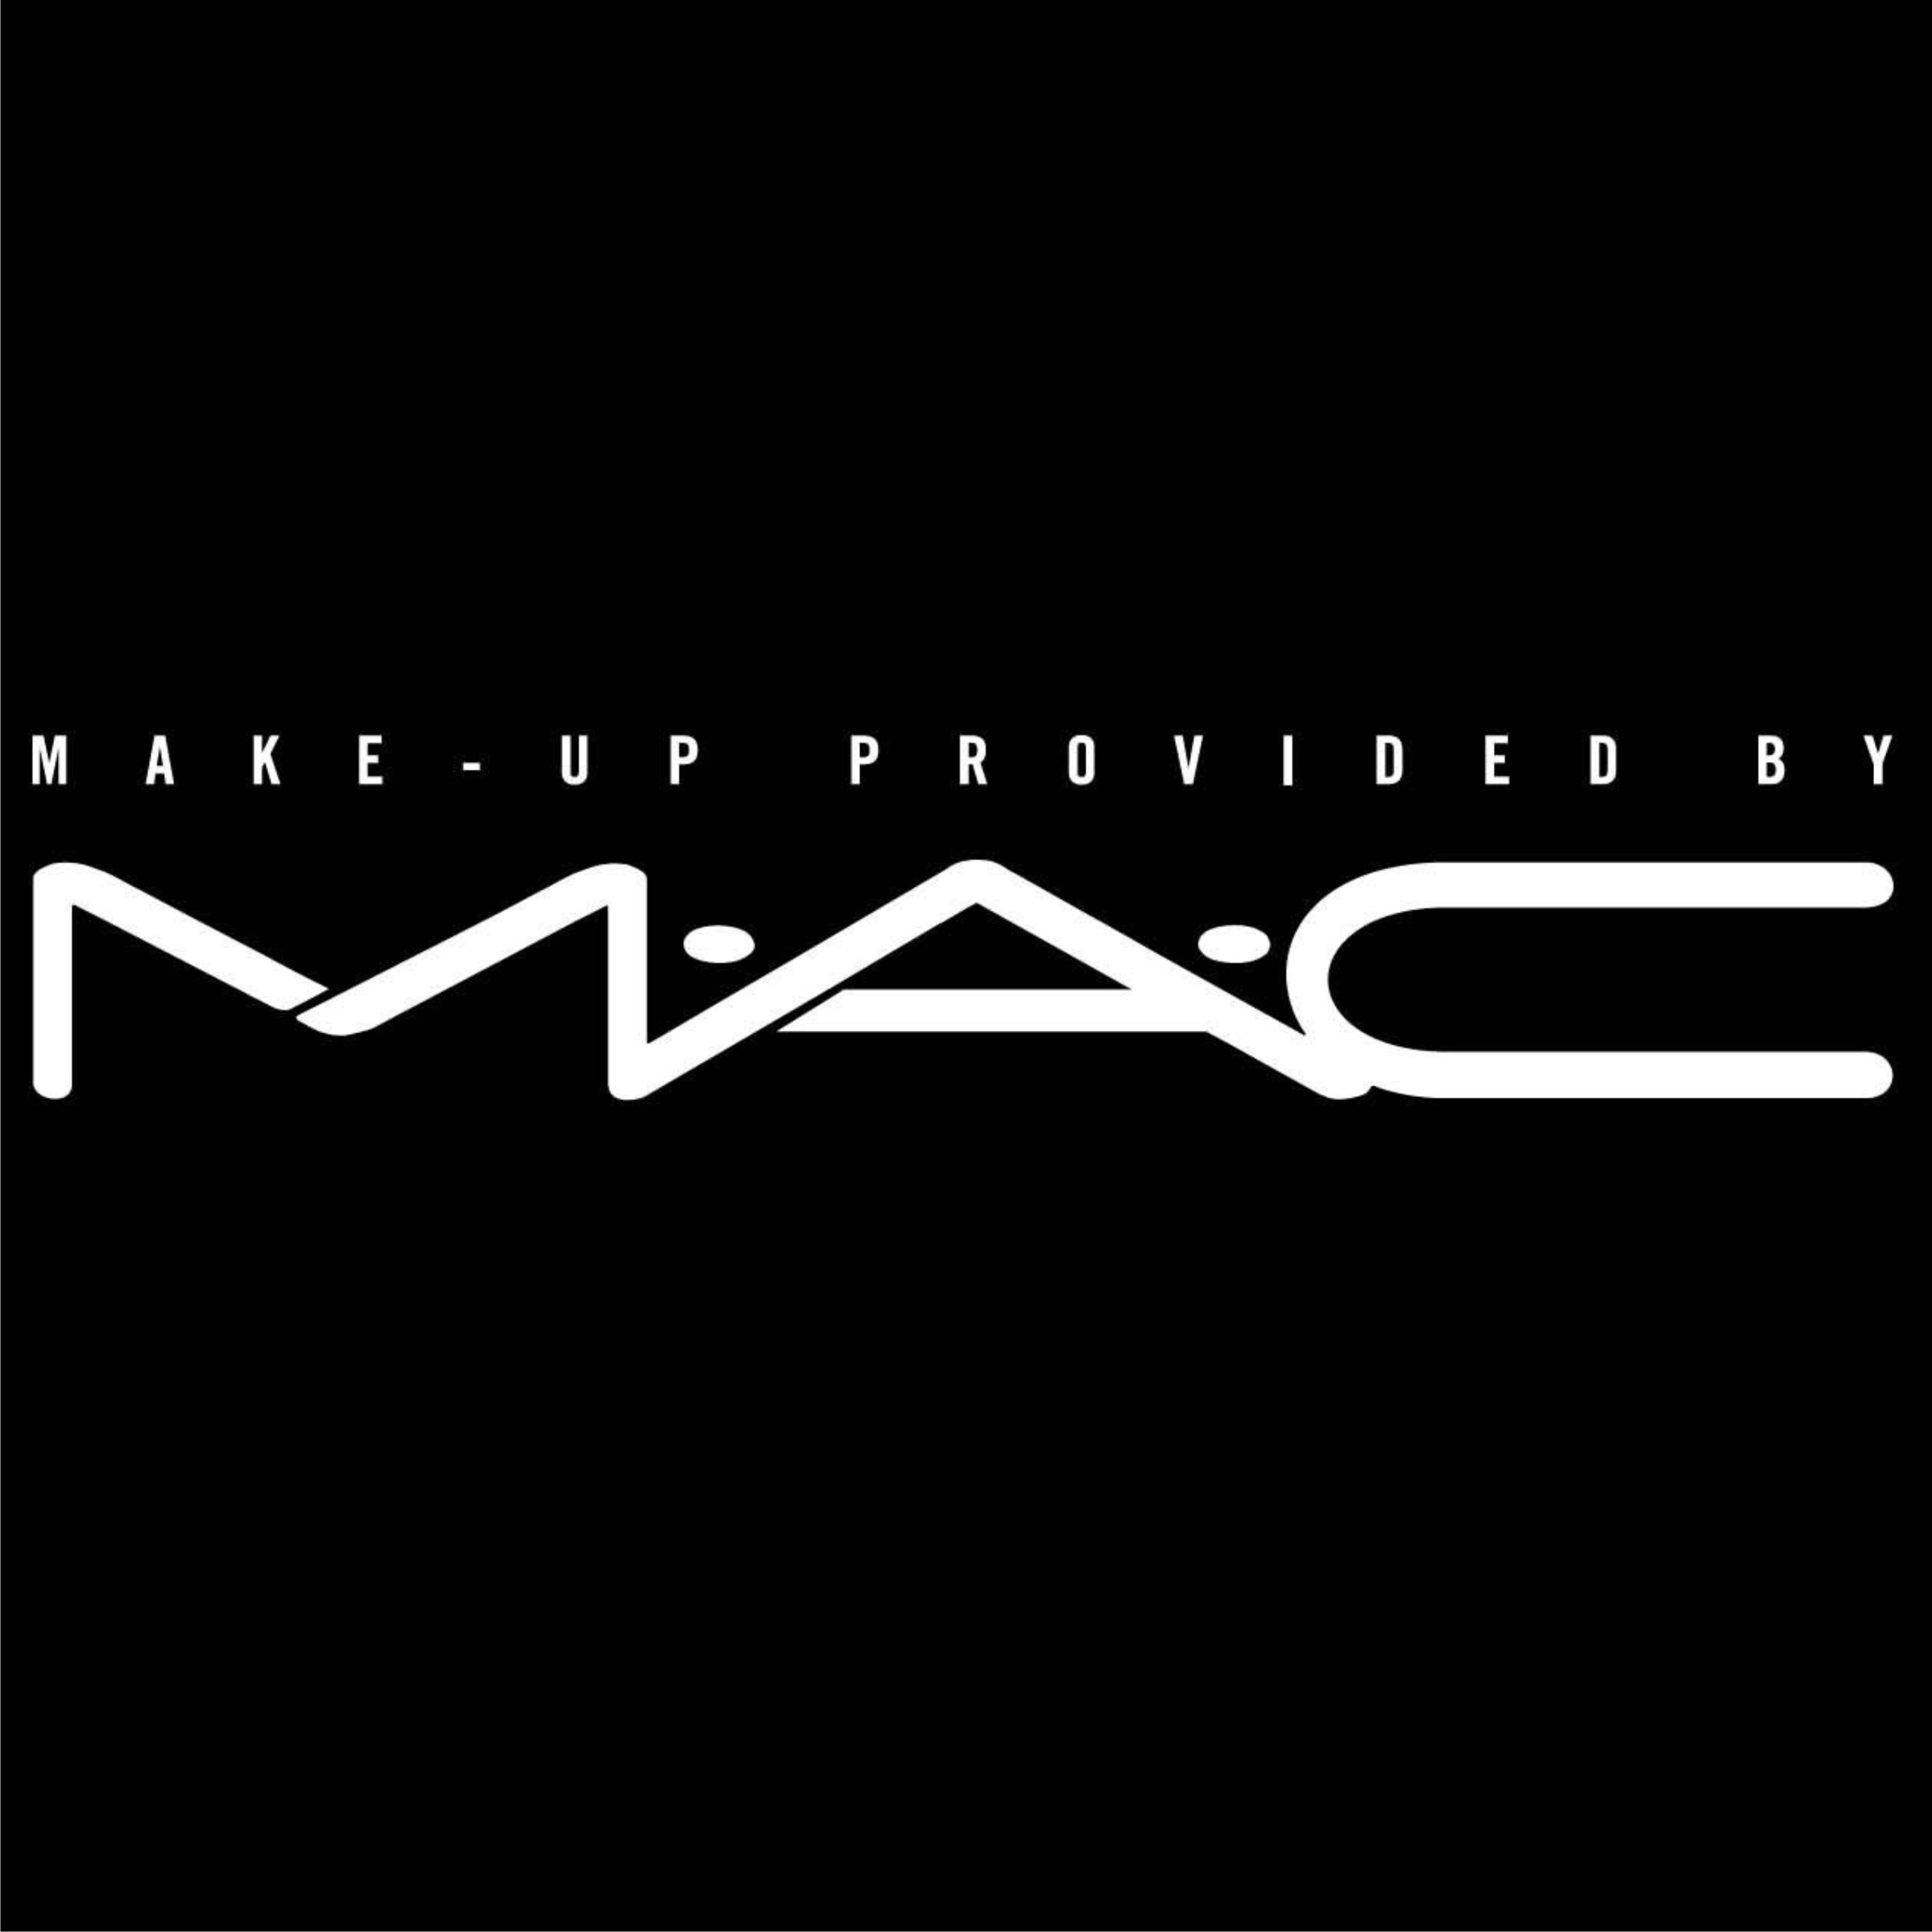 mac makeup logo vector saubhaya makeup